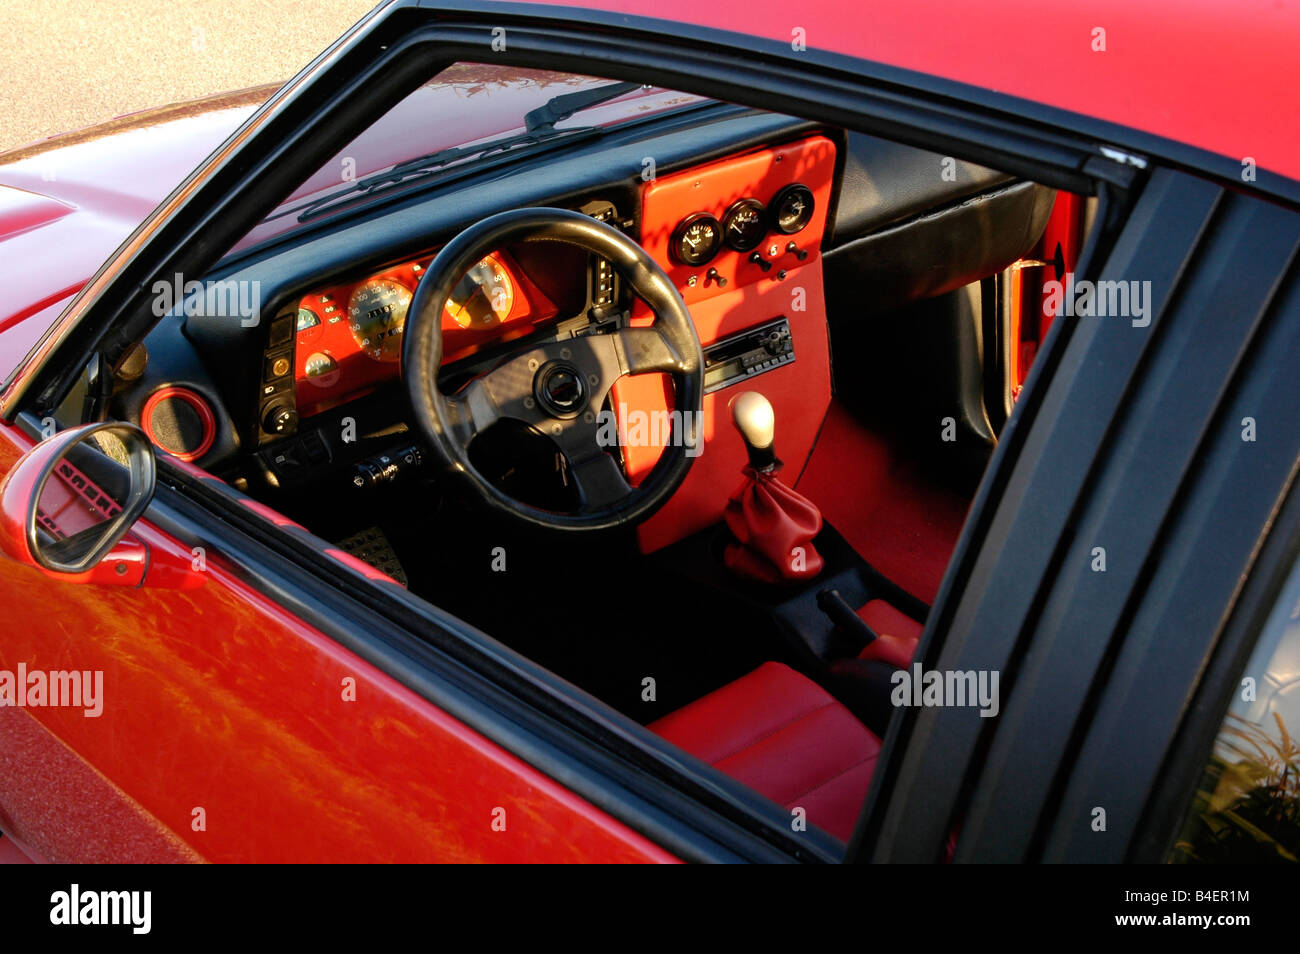 opel manta b stockfotos opel manta b bilder alamy. Black Bedroom Furniture Sets. Home Design Ideas